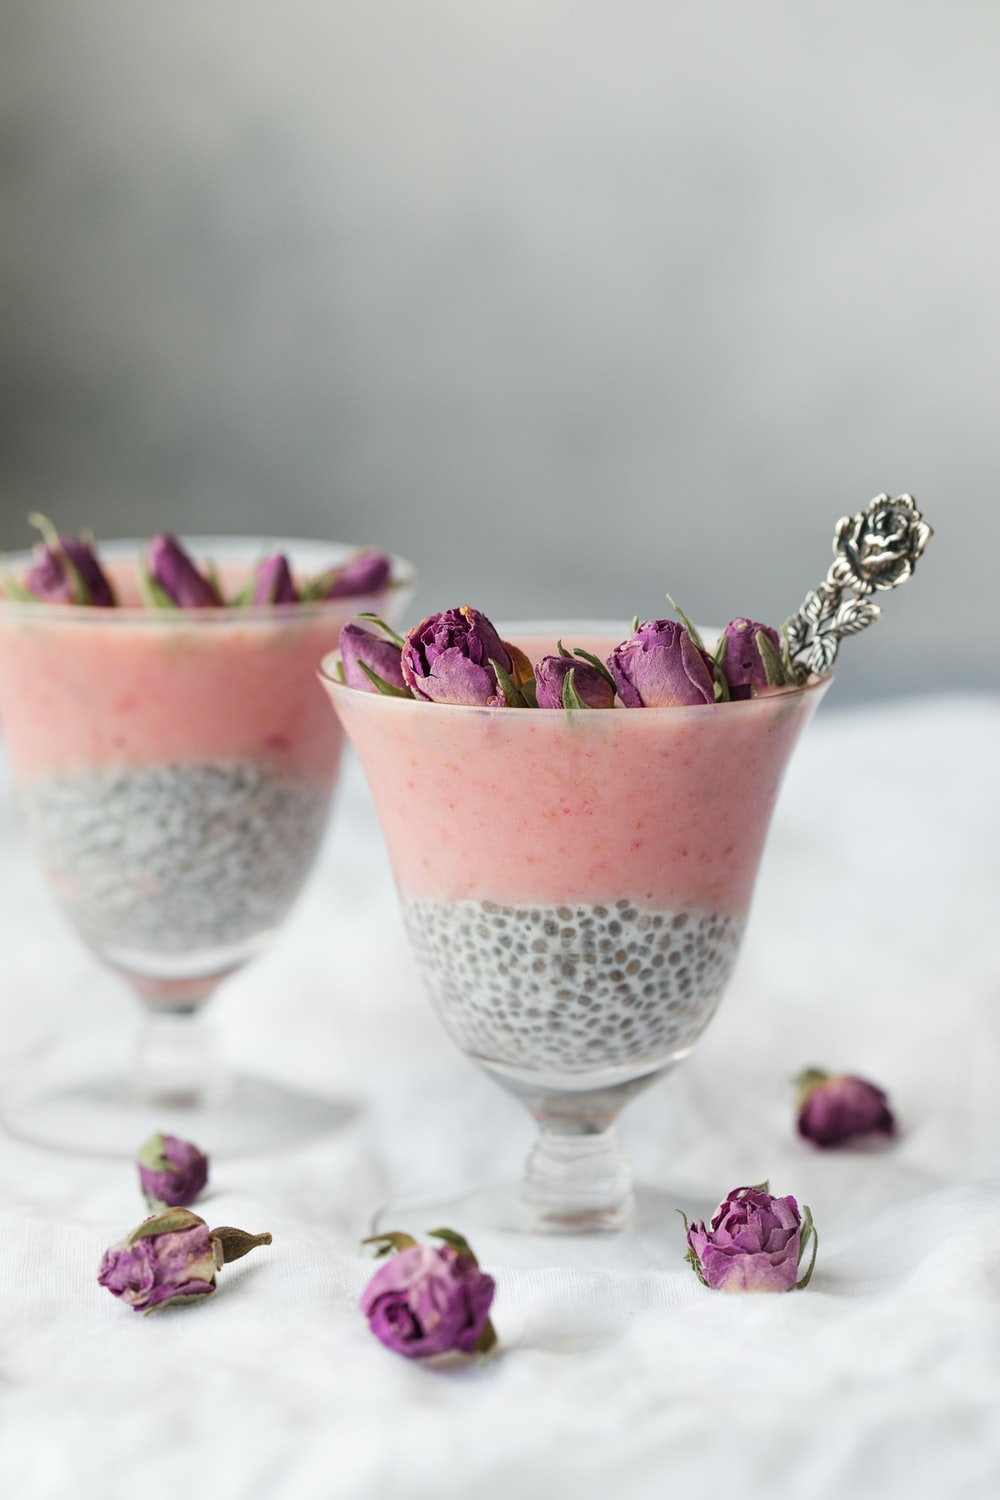 two pink tapioca dessert topped with pink rose buds